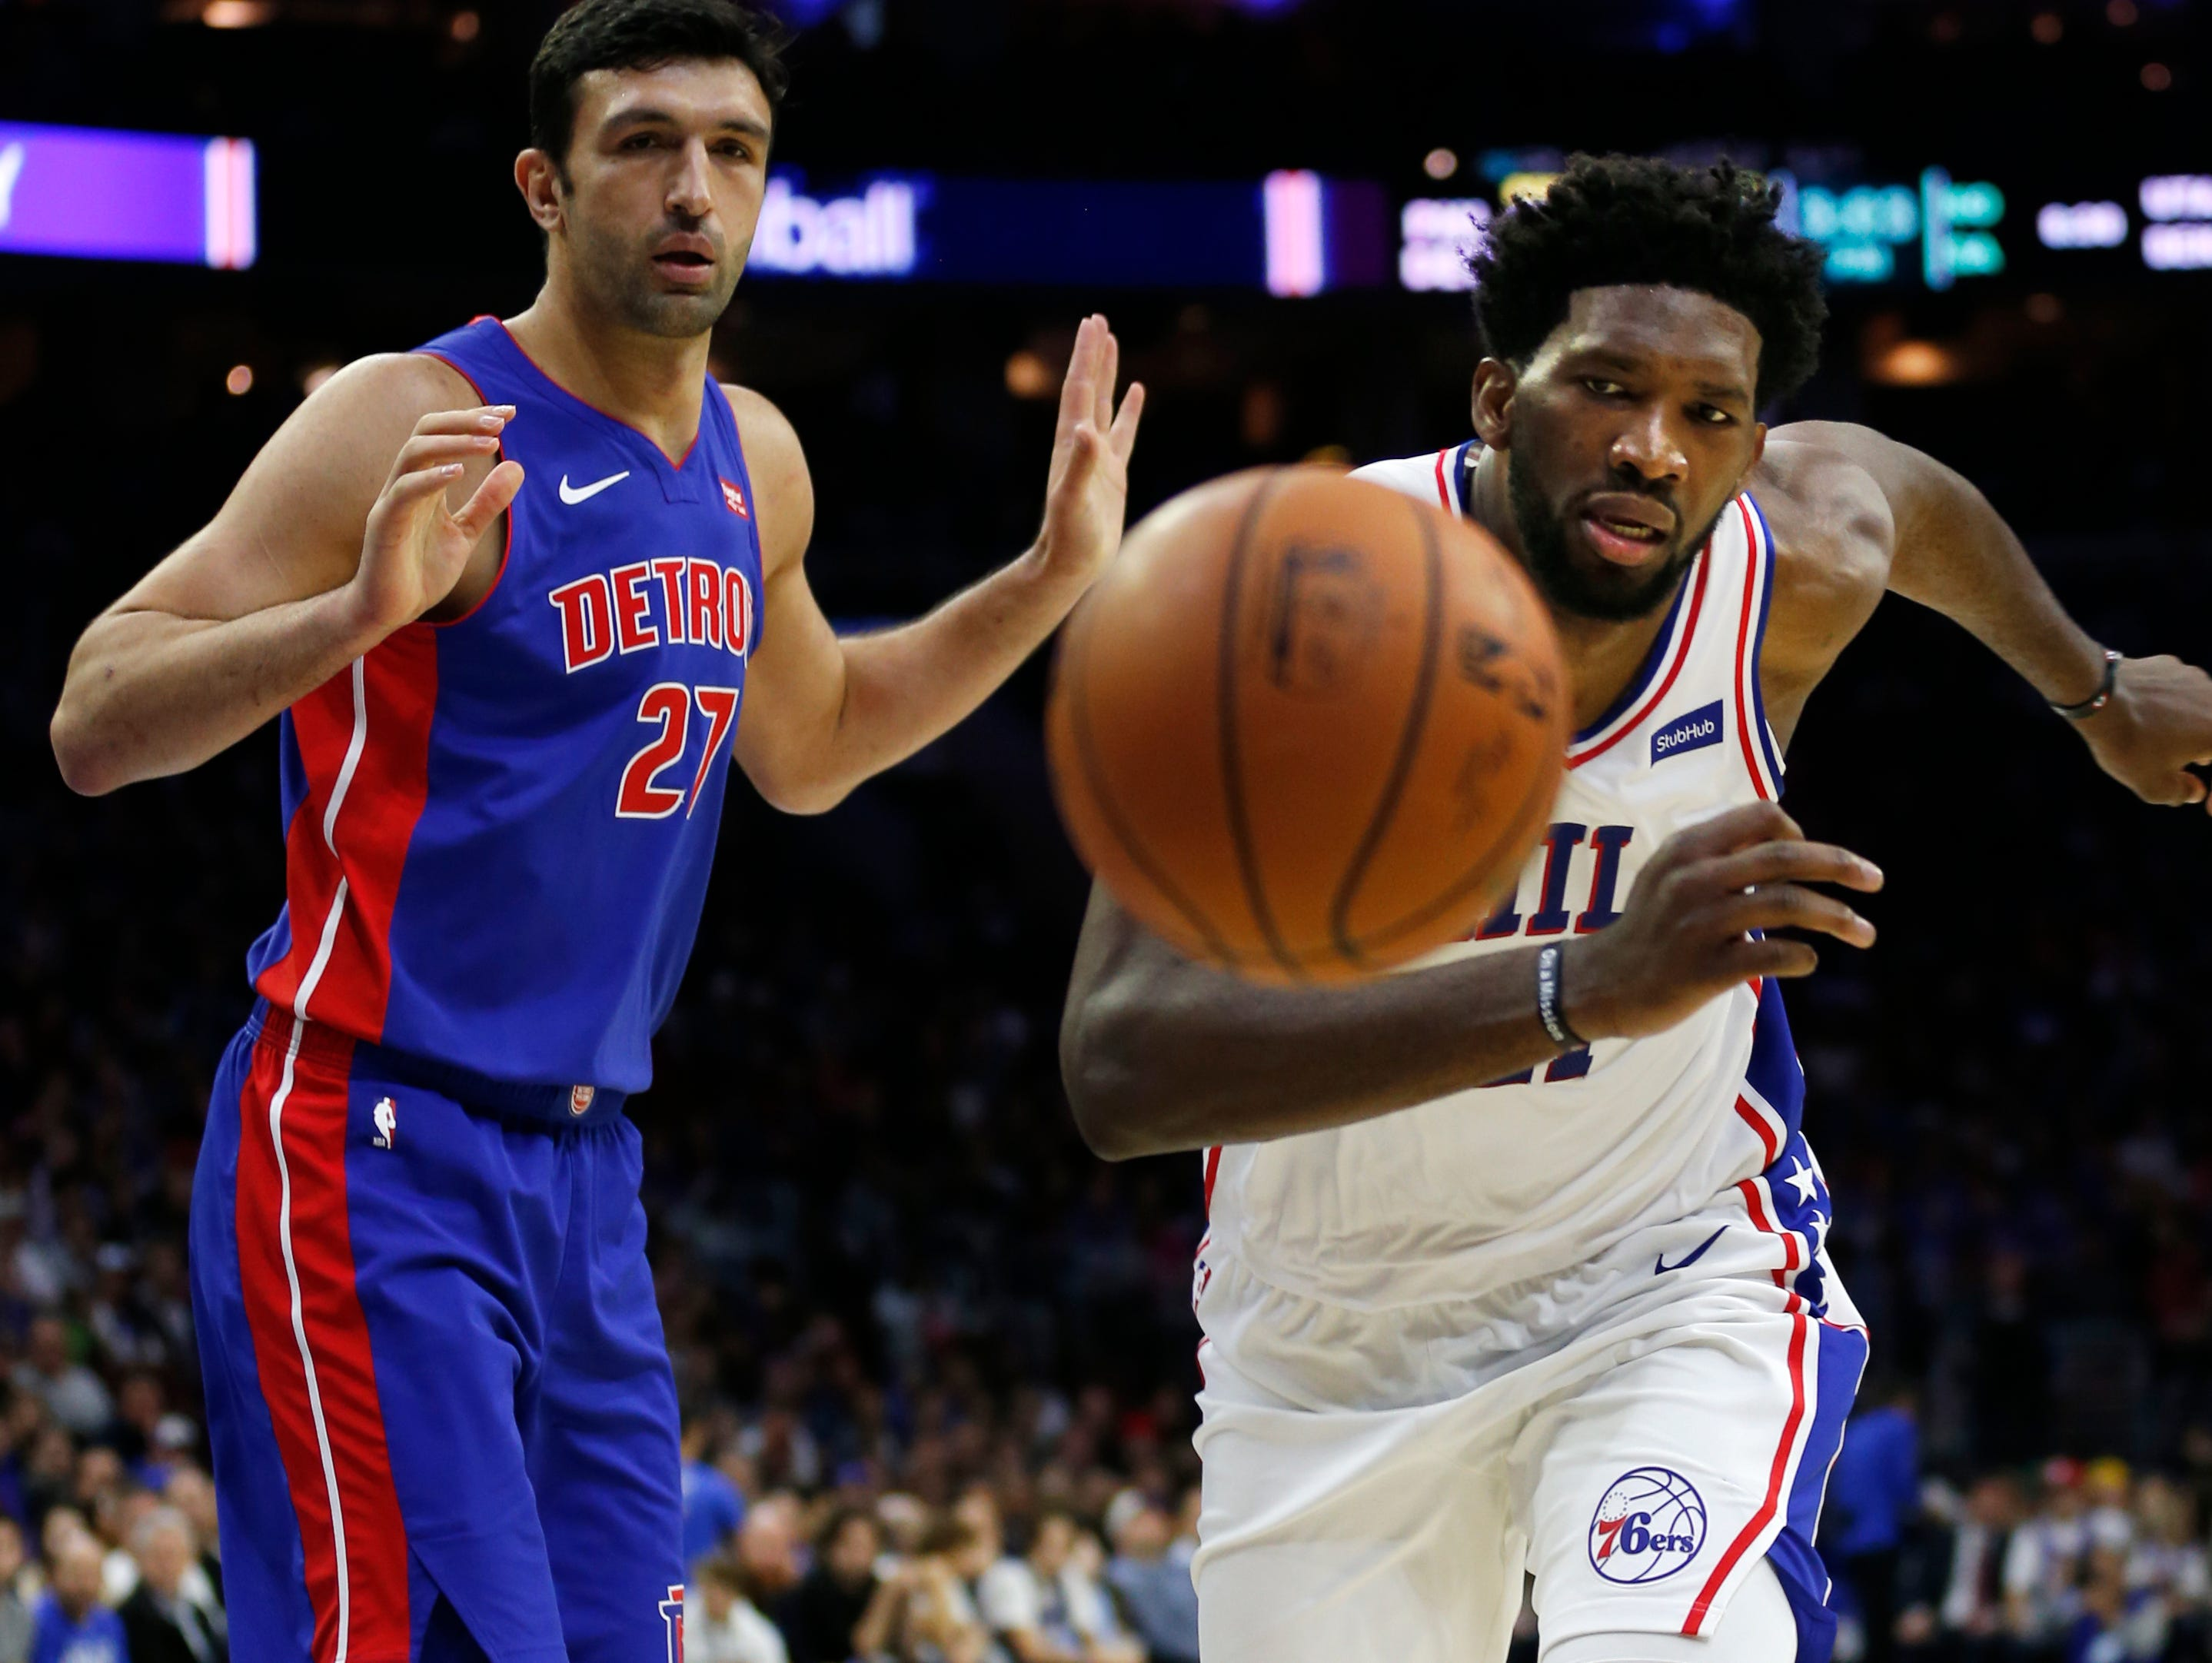 Philadelphia 76ers 109, Detroit Pistons 99: Photos from Philly